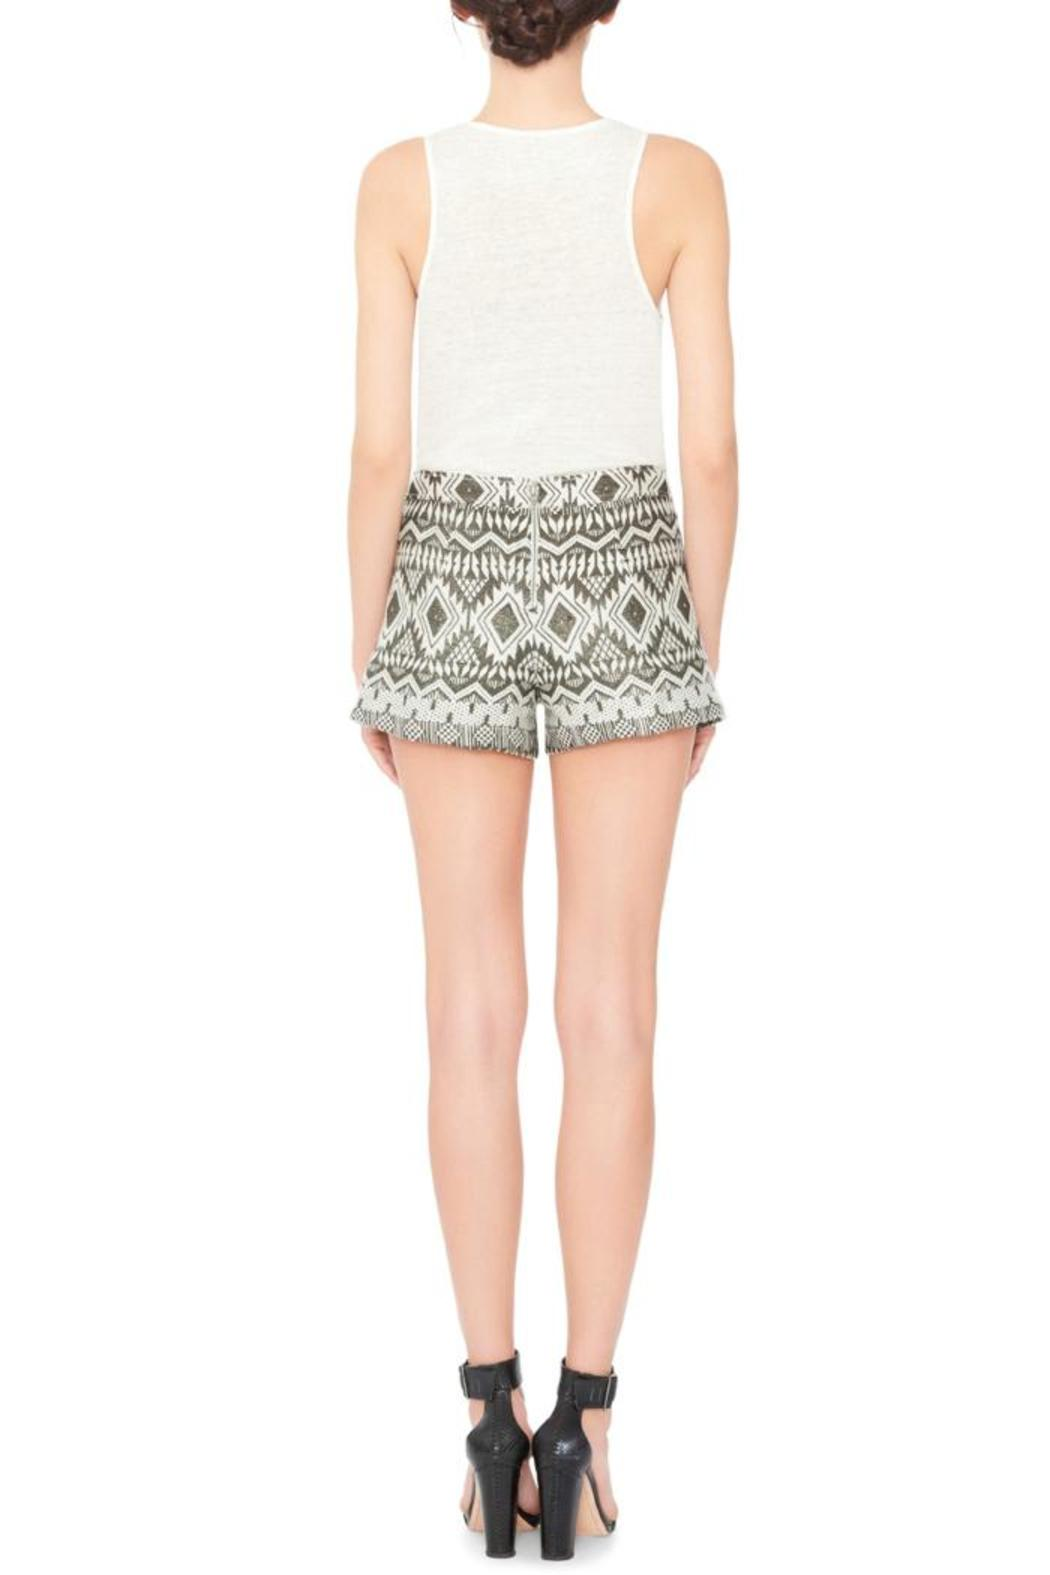 Alice + Olivia Marisa Embroidered Shorts - Front Full Image